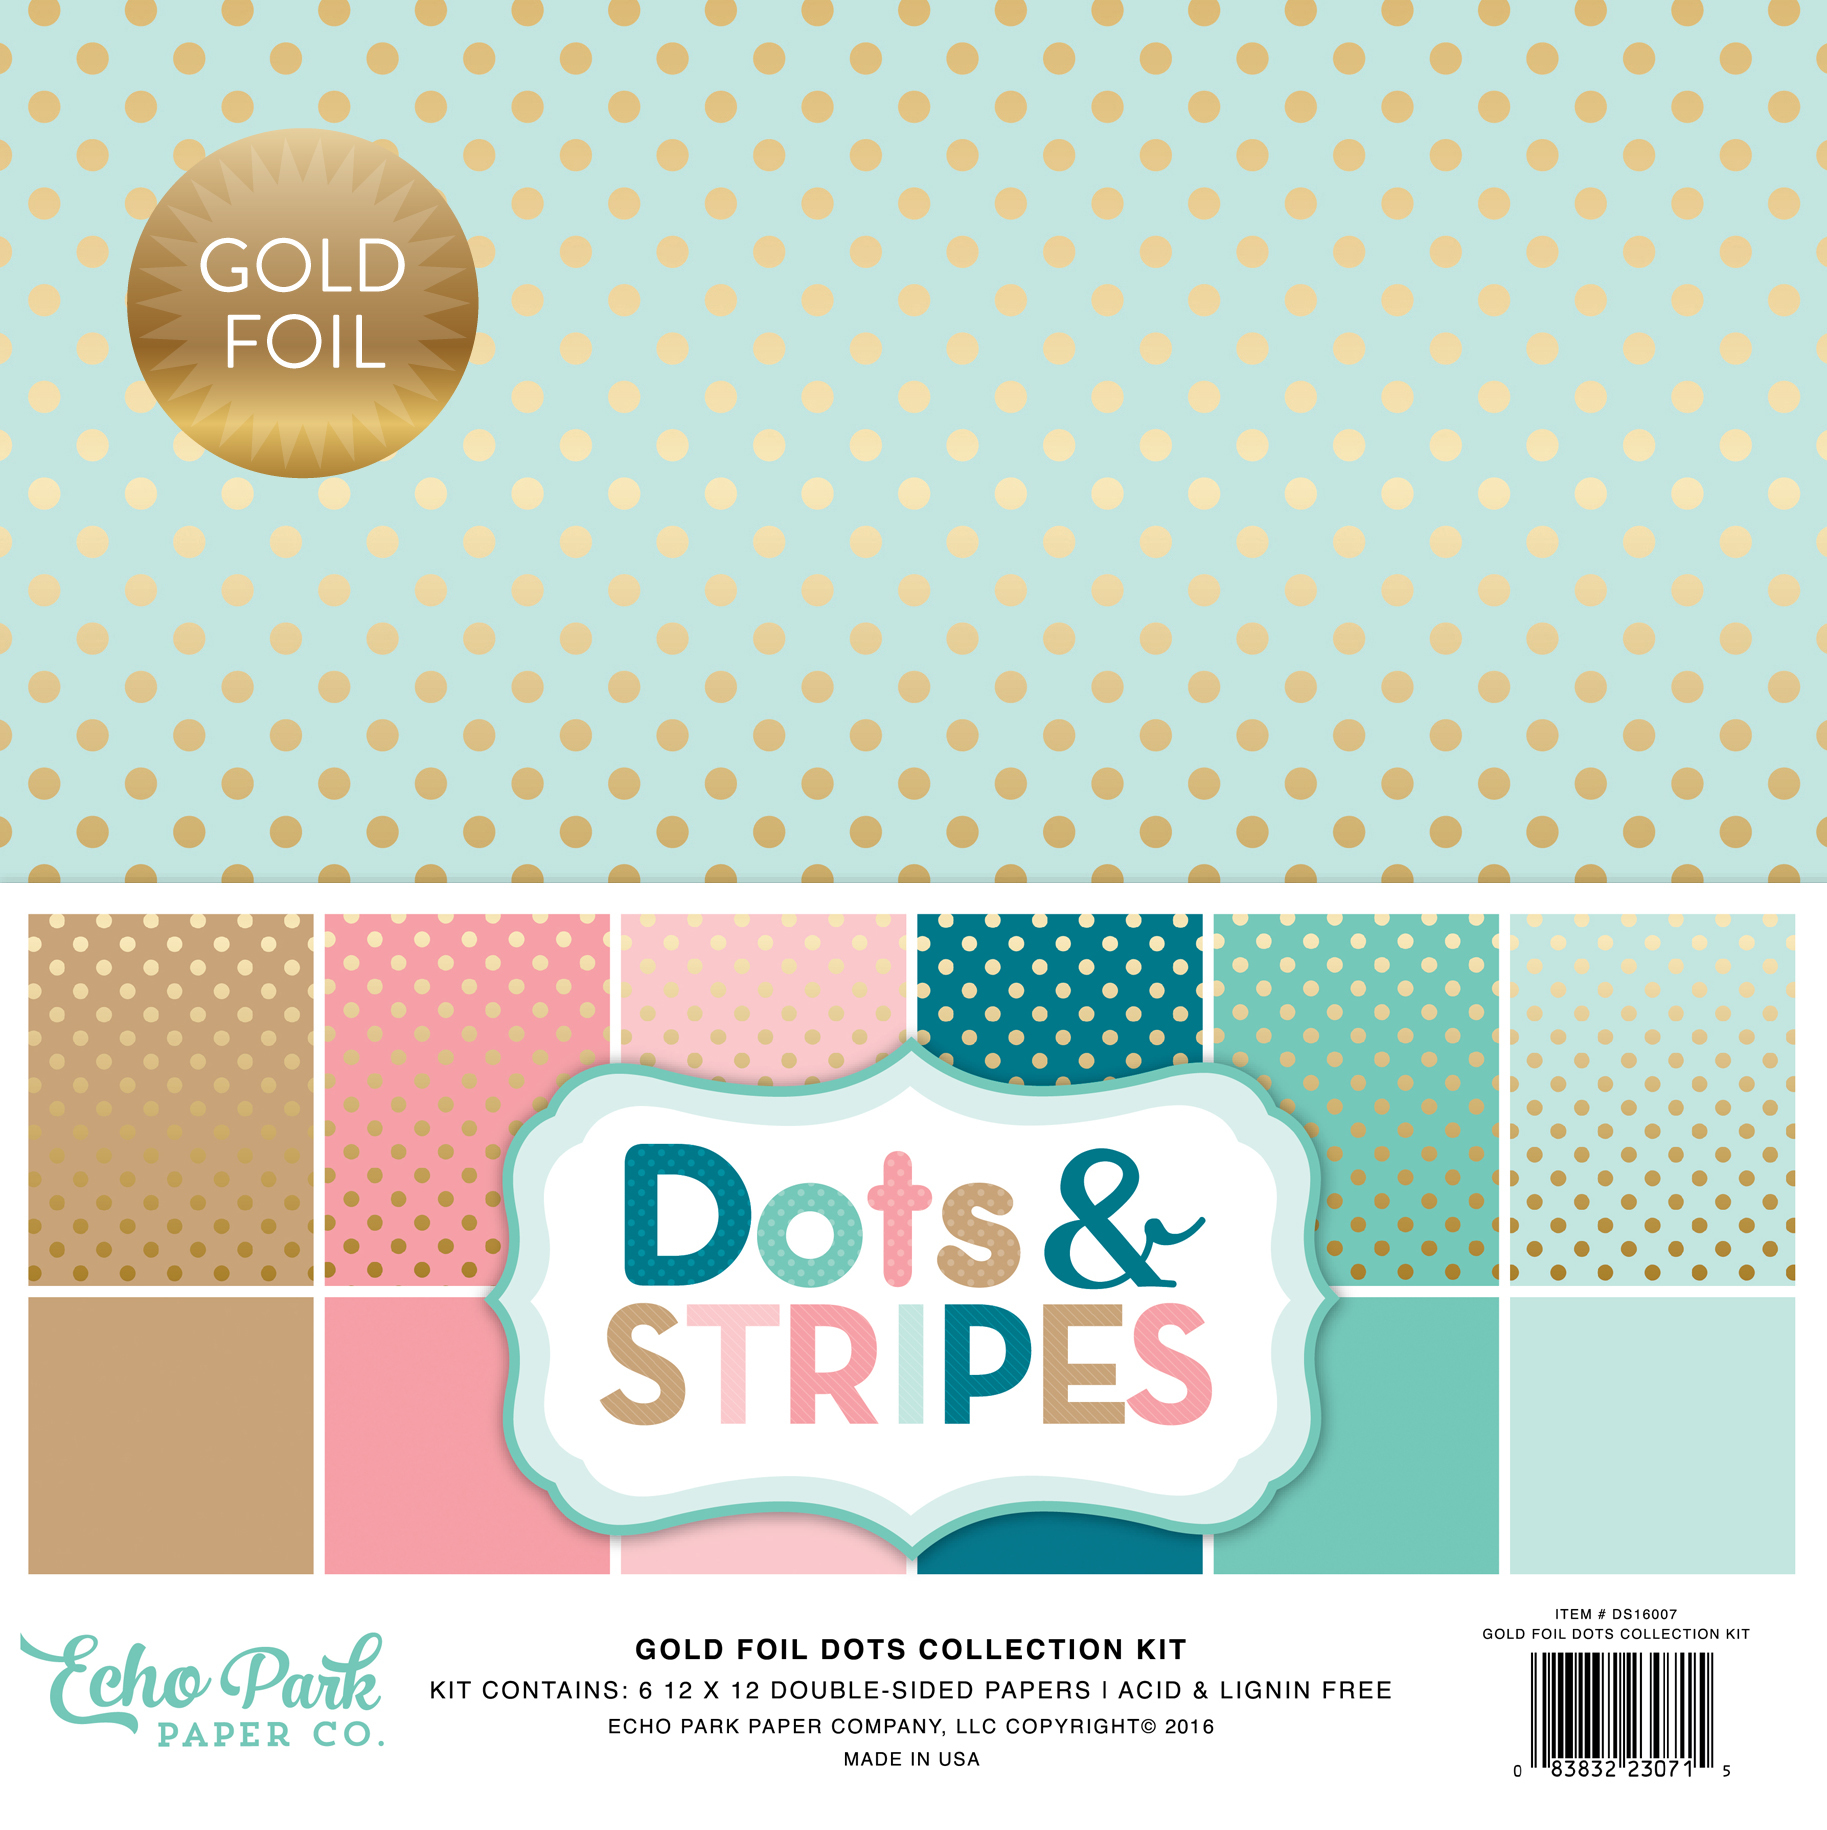 Dots & Stripes Gold Foil Dots